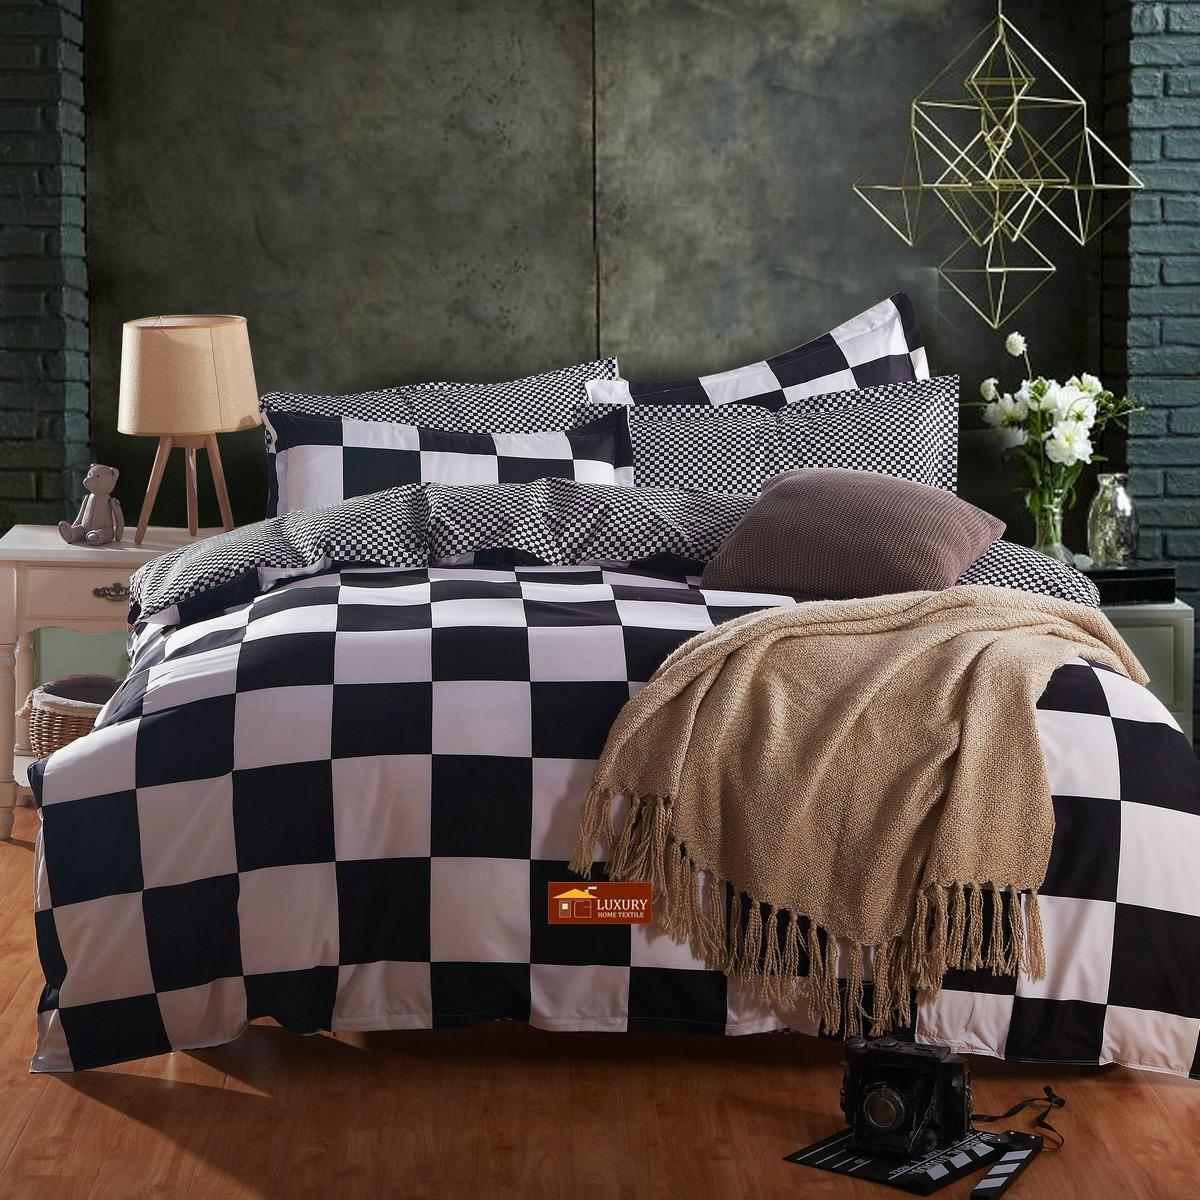 California King Bedding Sale Online California King Bedding Sets